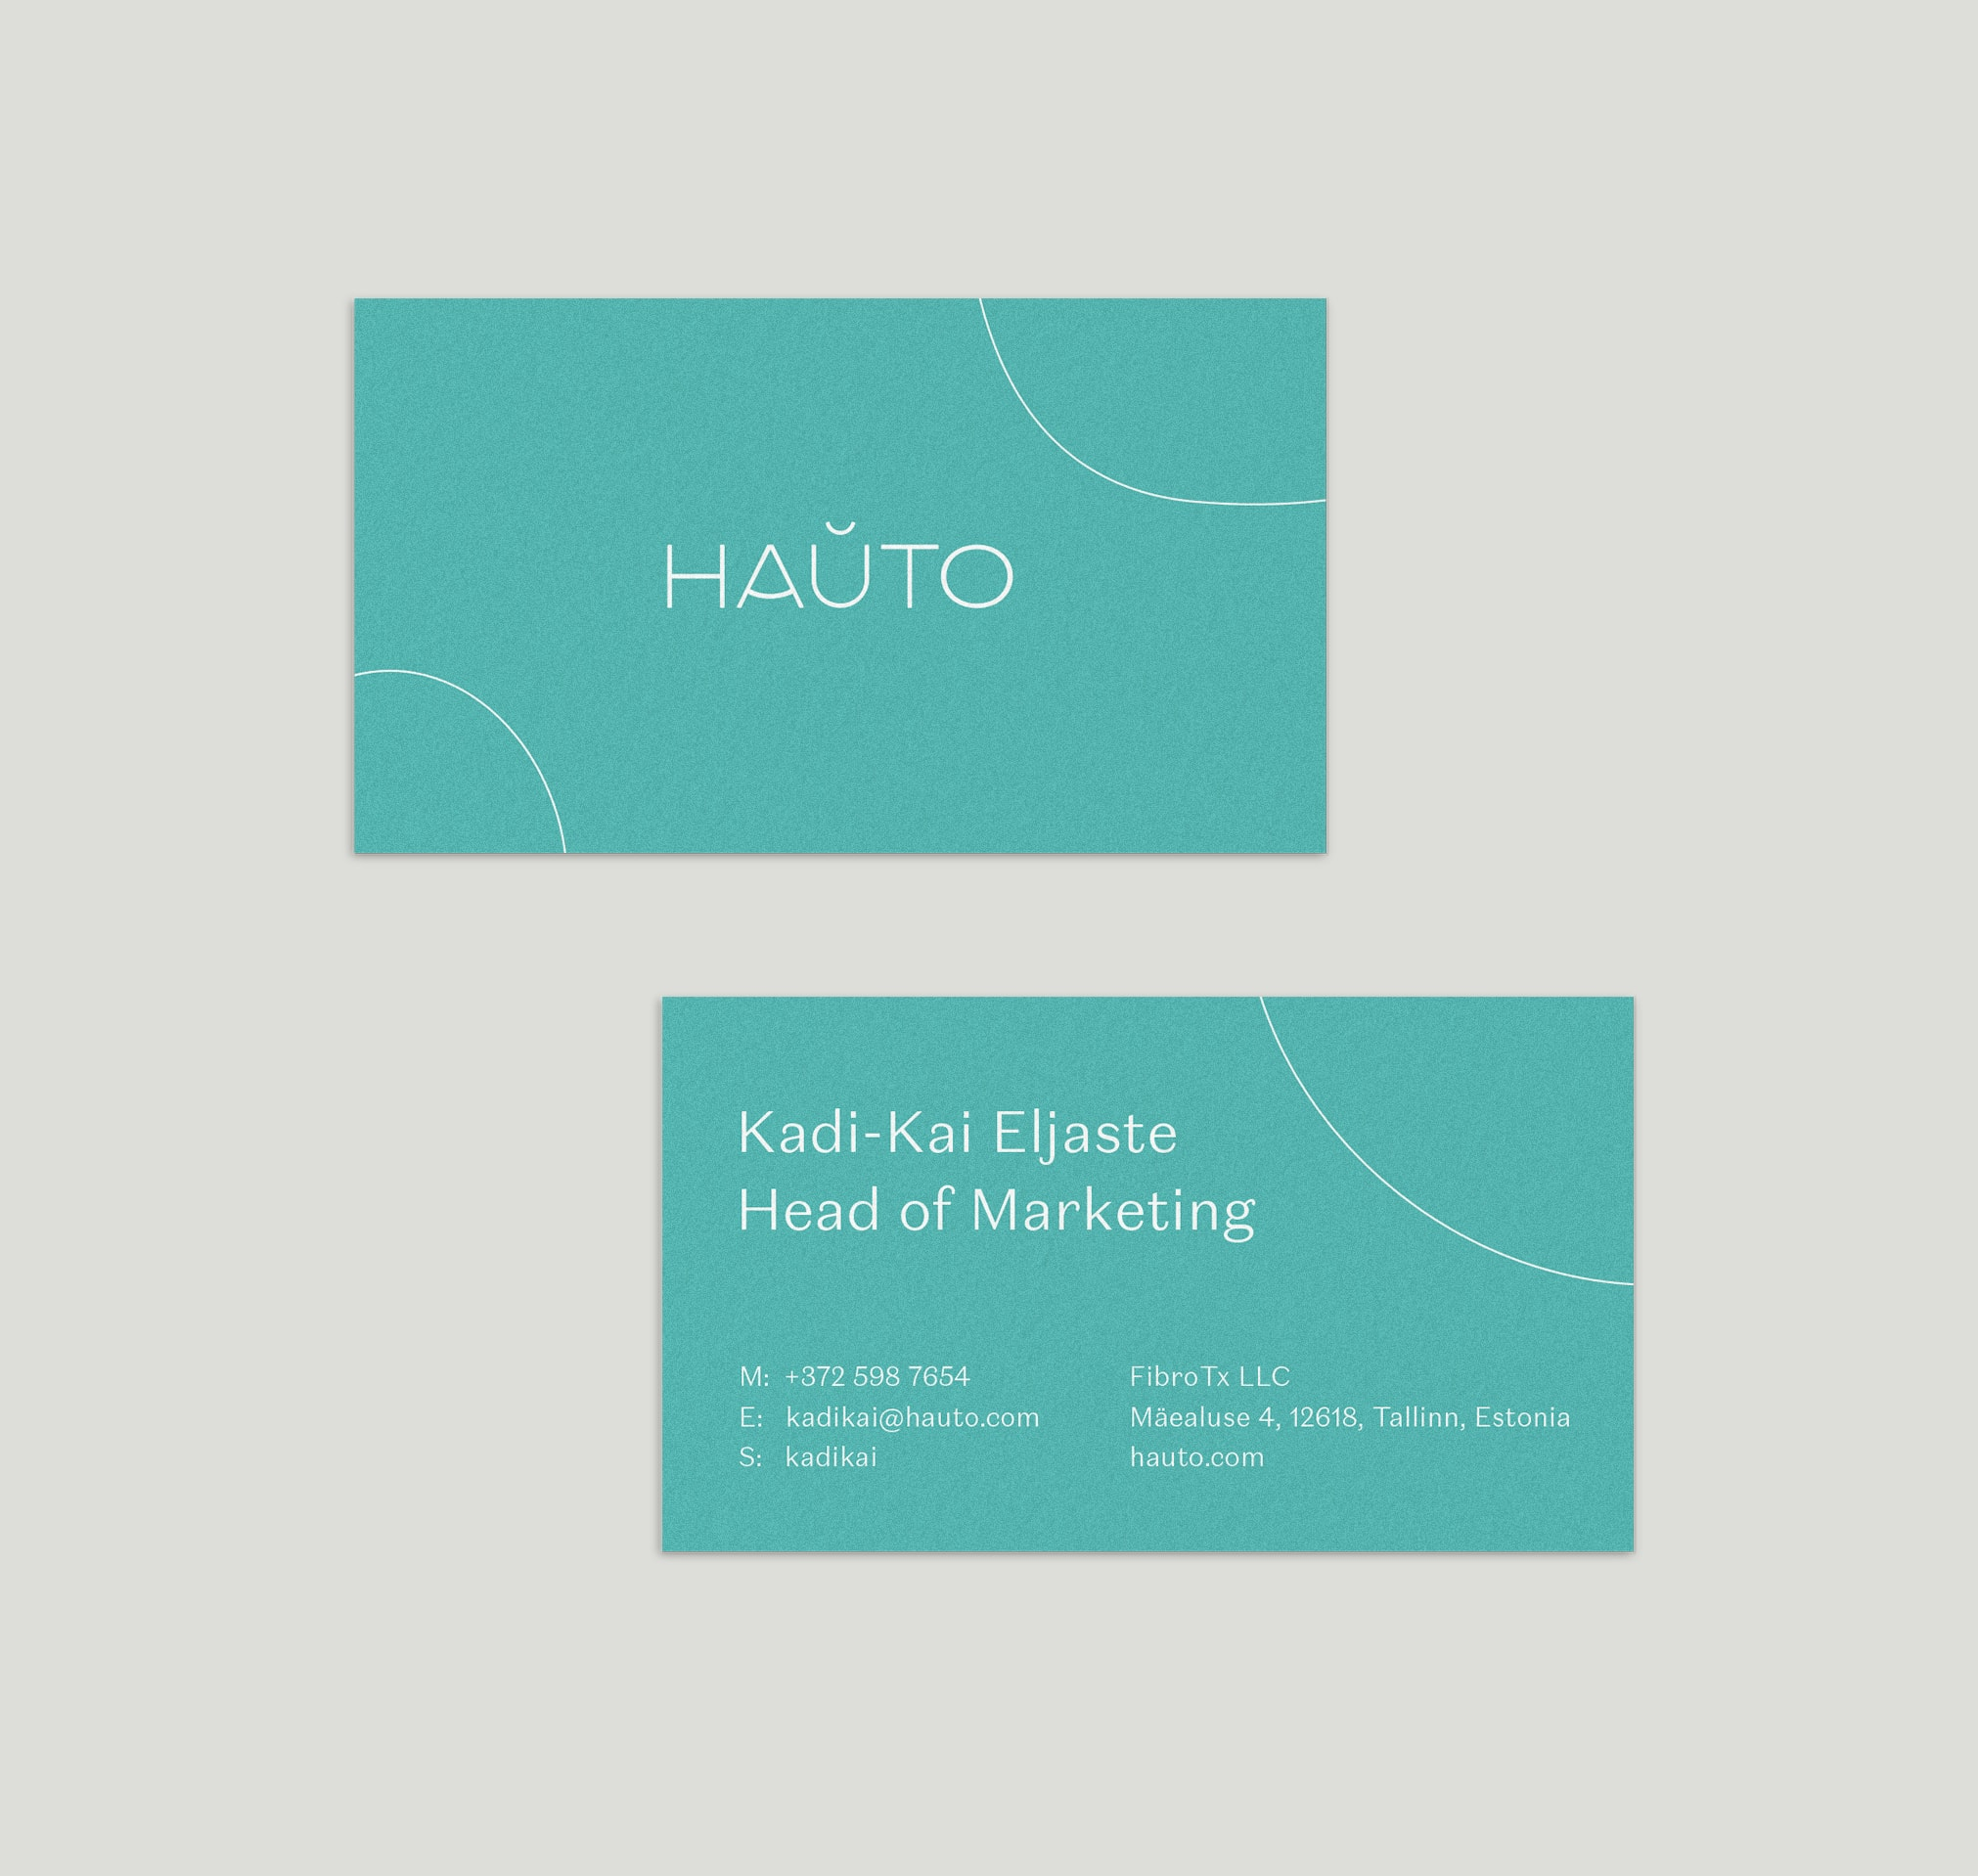 hauto-business-mockup